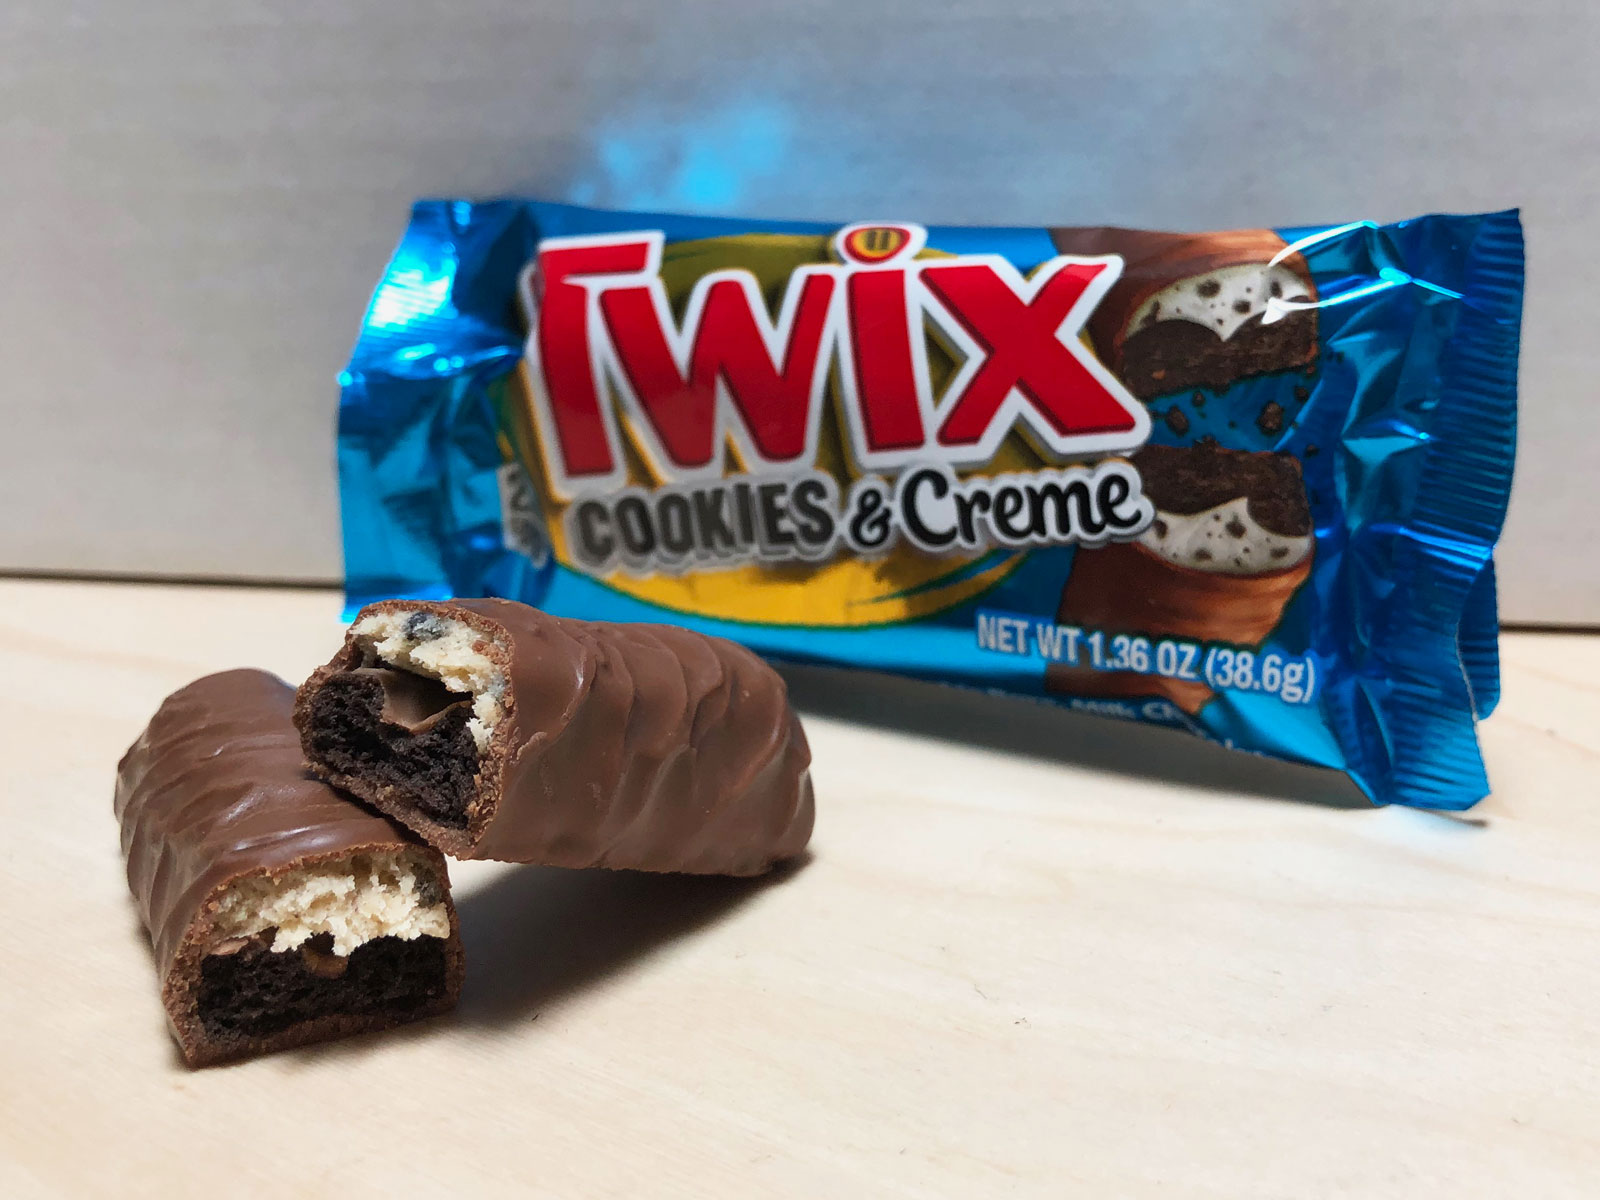 twix-cookies-creme-FT-BLOG0819.JPG